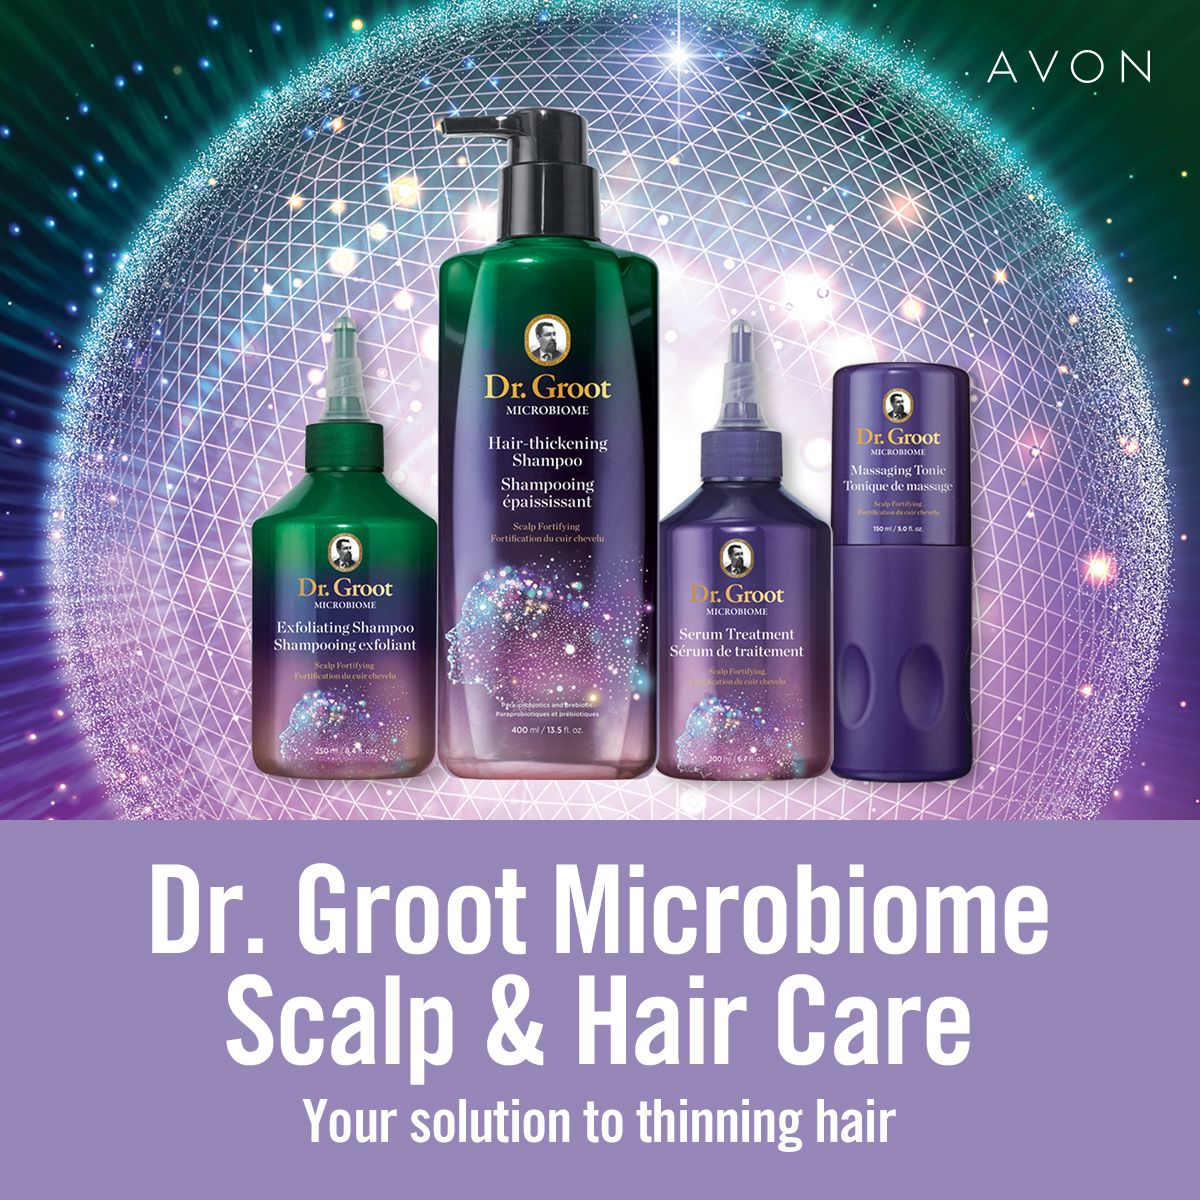 INTRODUCING DR. GROOT MICROBIOME SCALP & HAIR CARE Your solution to thinning hair. Infused…